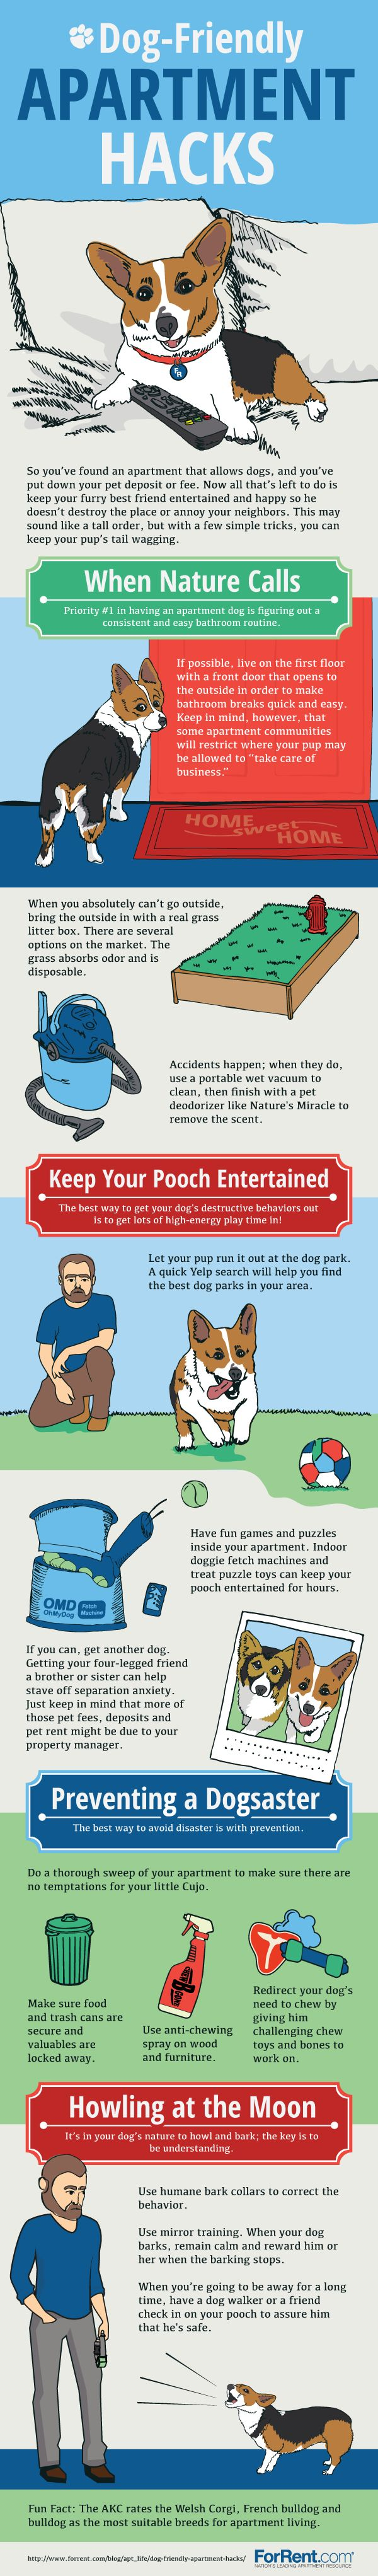 Dog Friendly Apartment Hacks